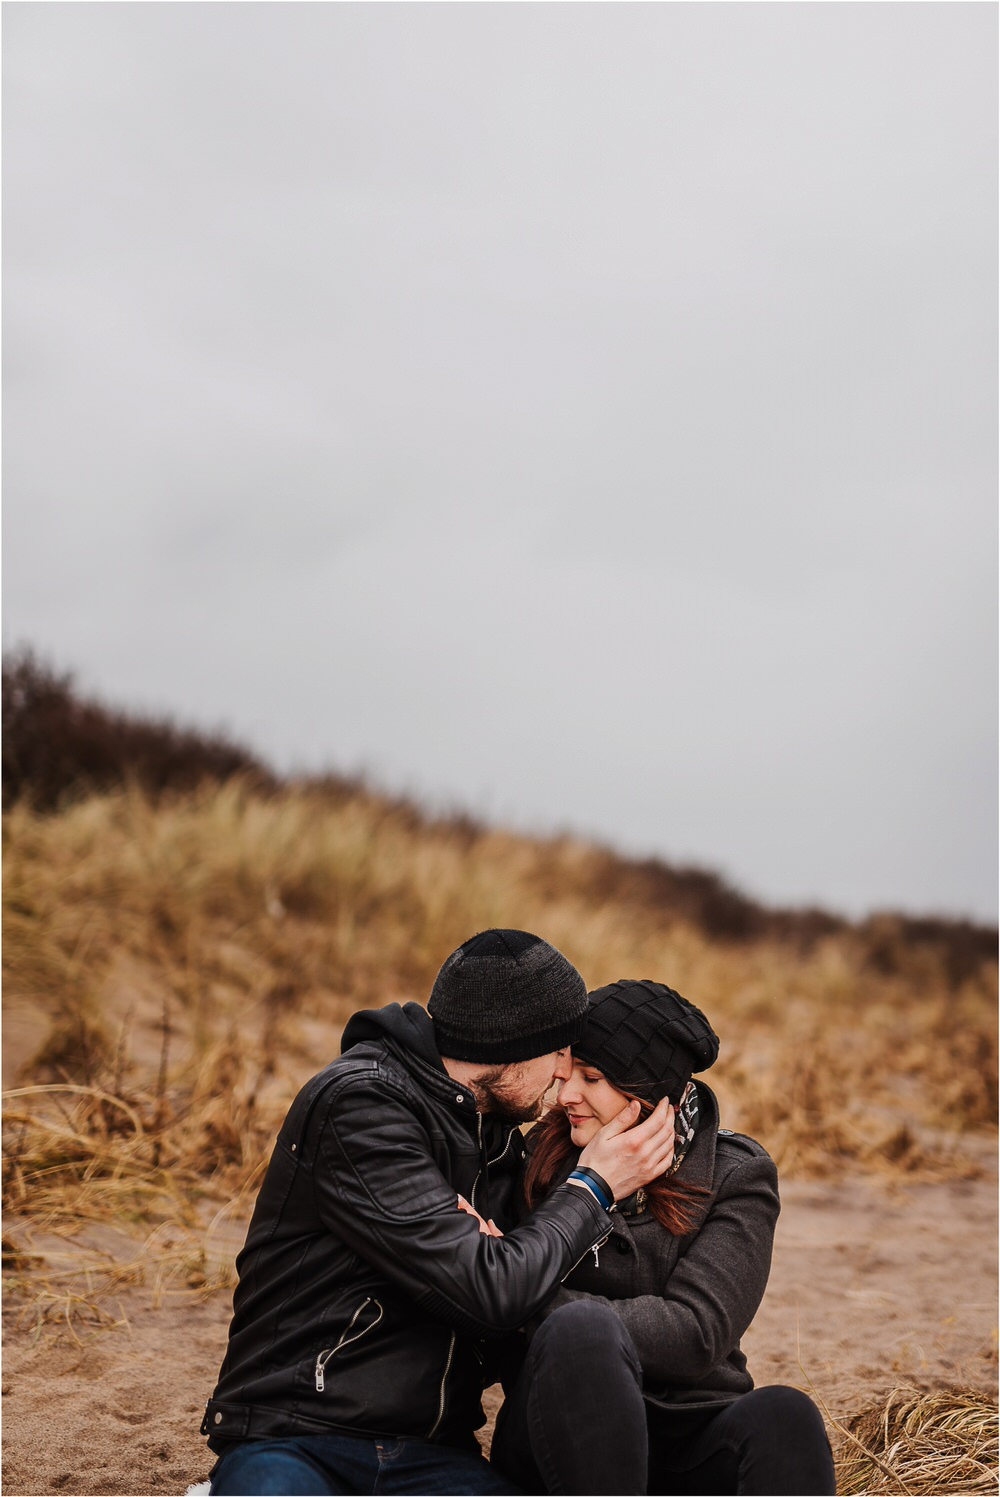 skegness uk england great britain photographer wedding engagement session photoshoot lincolnshire recommended photography 0063.jpg